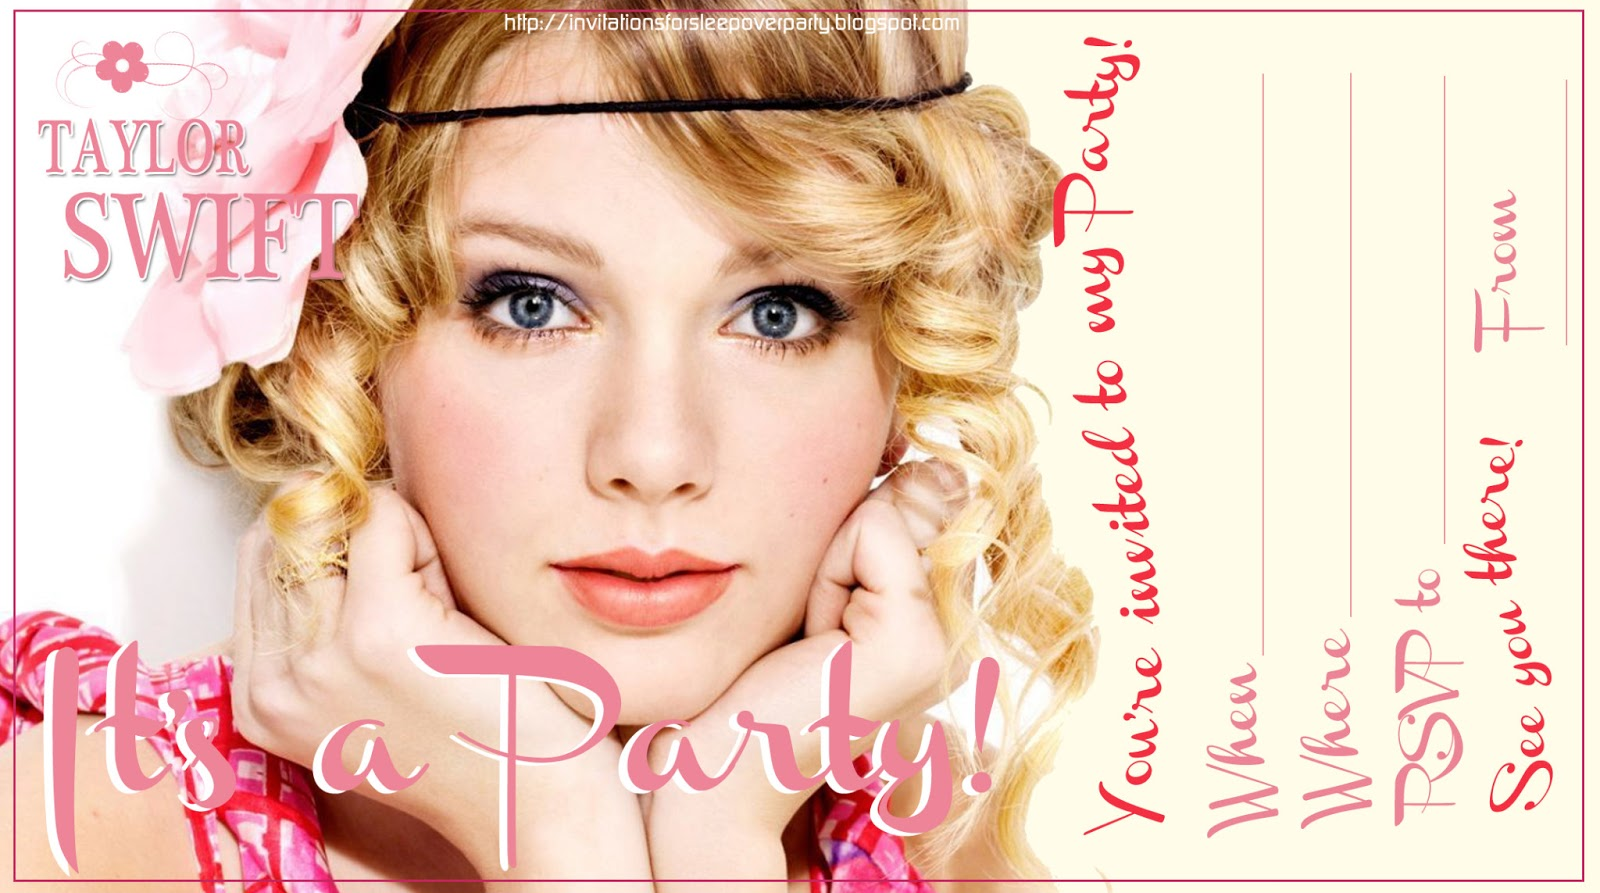 Invitations For Sleepover Party Taylor Swift